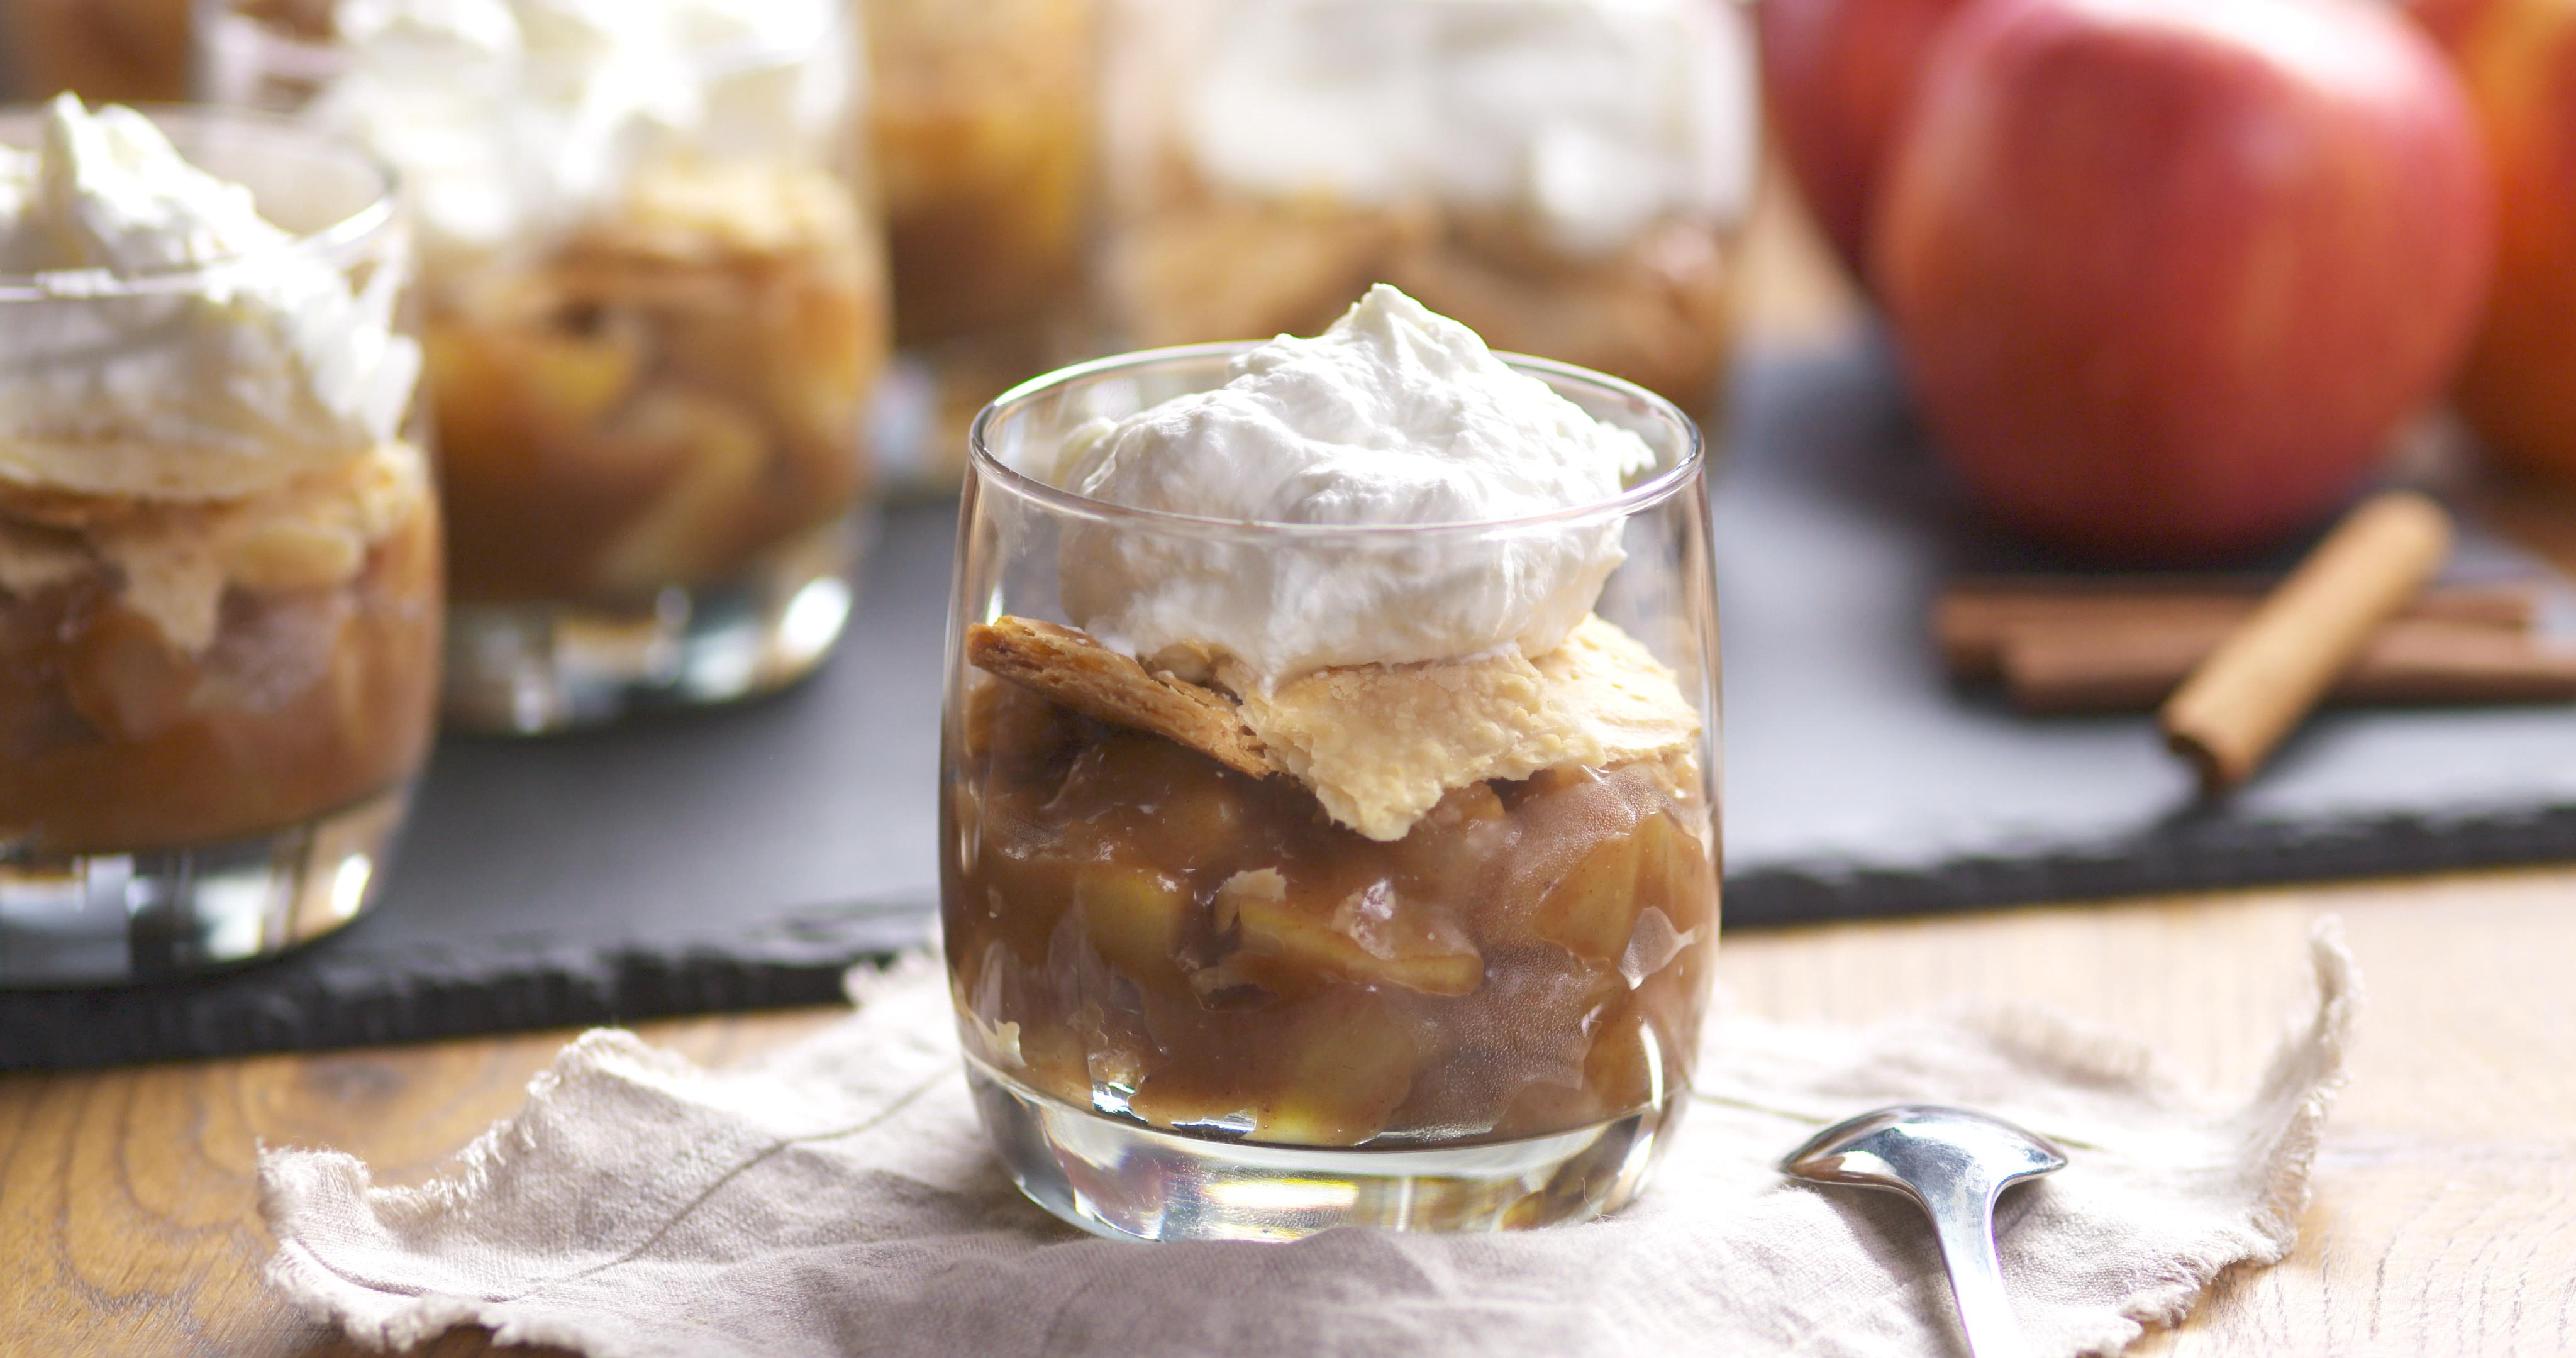 Best Bites: Deconstructed Apple Pie in a Cup